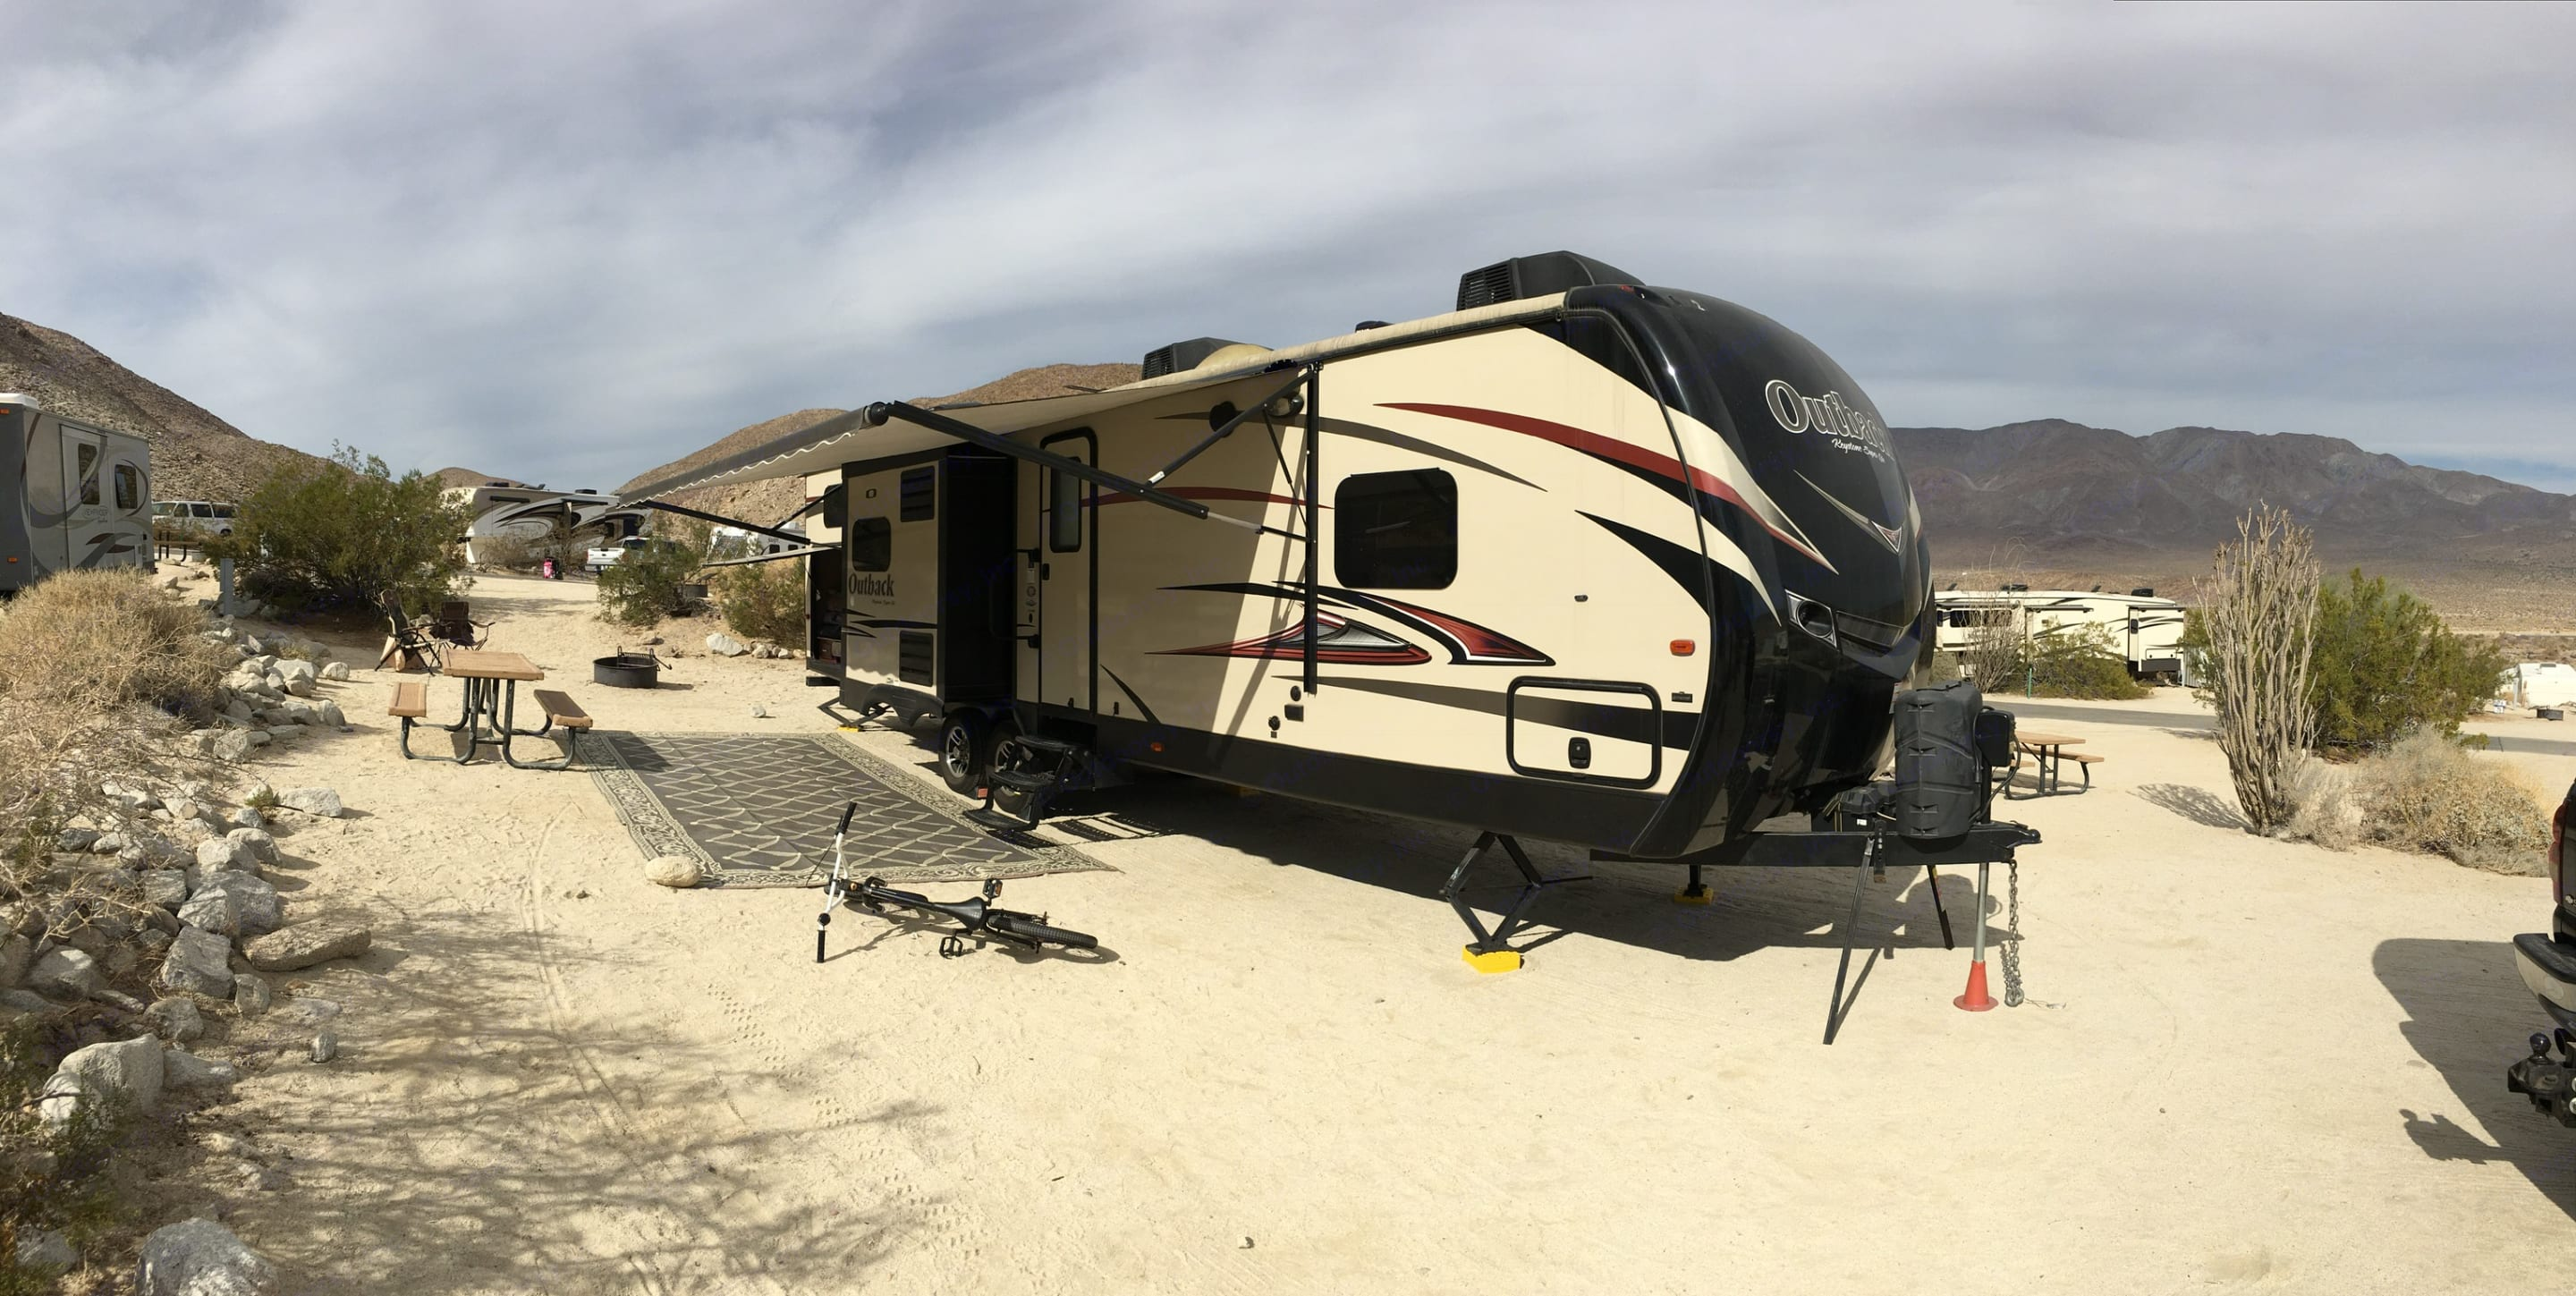 Desert camping at Agua Caleinte county park in Julian . Keystone Outback 2015